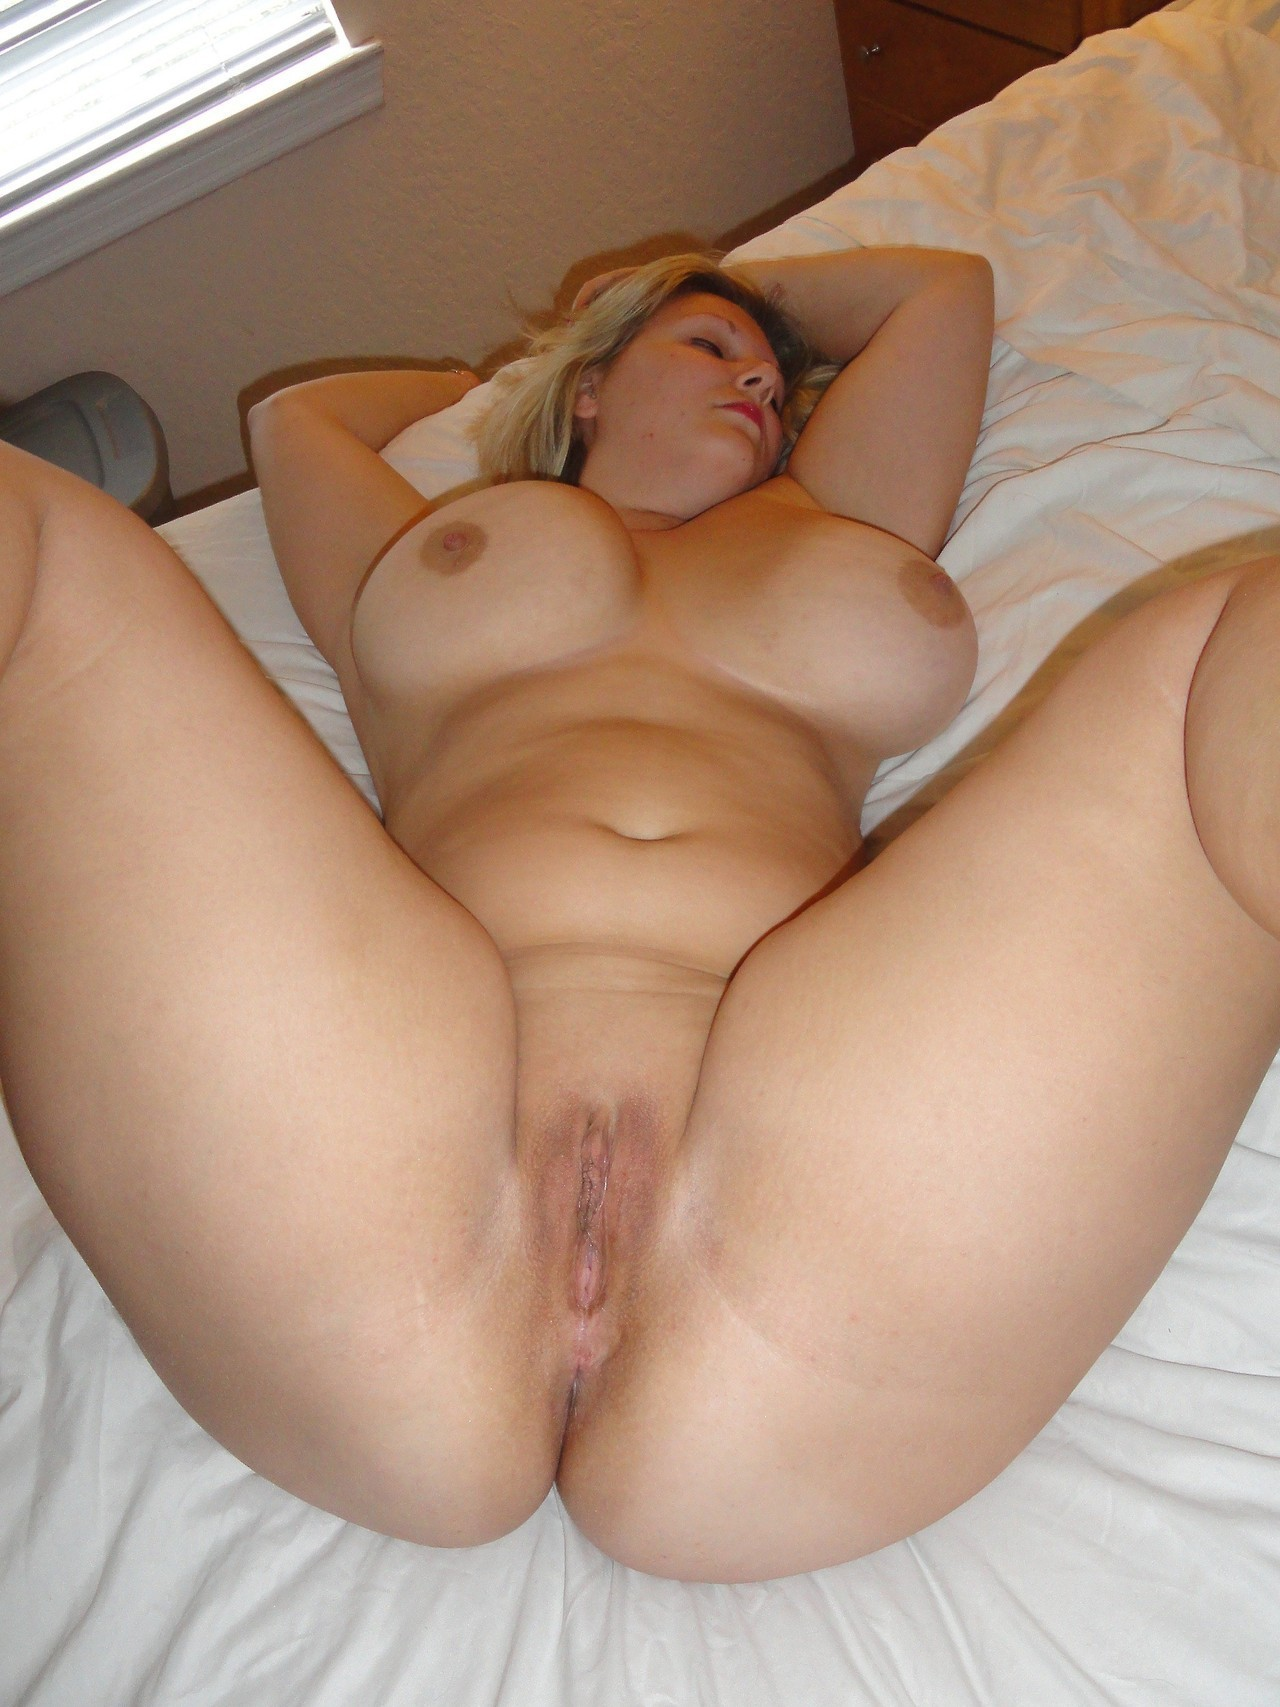 Thick curvy brunette fat pussy free porn galery